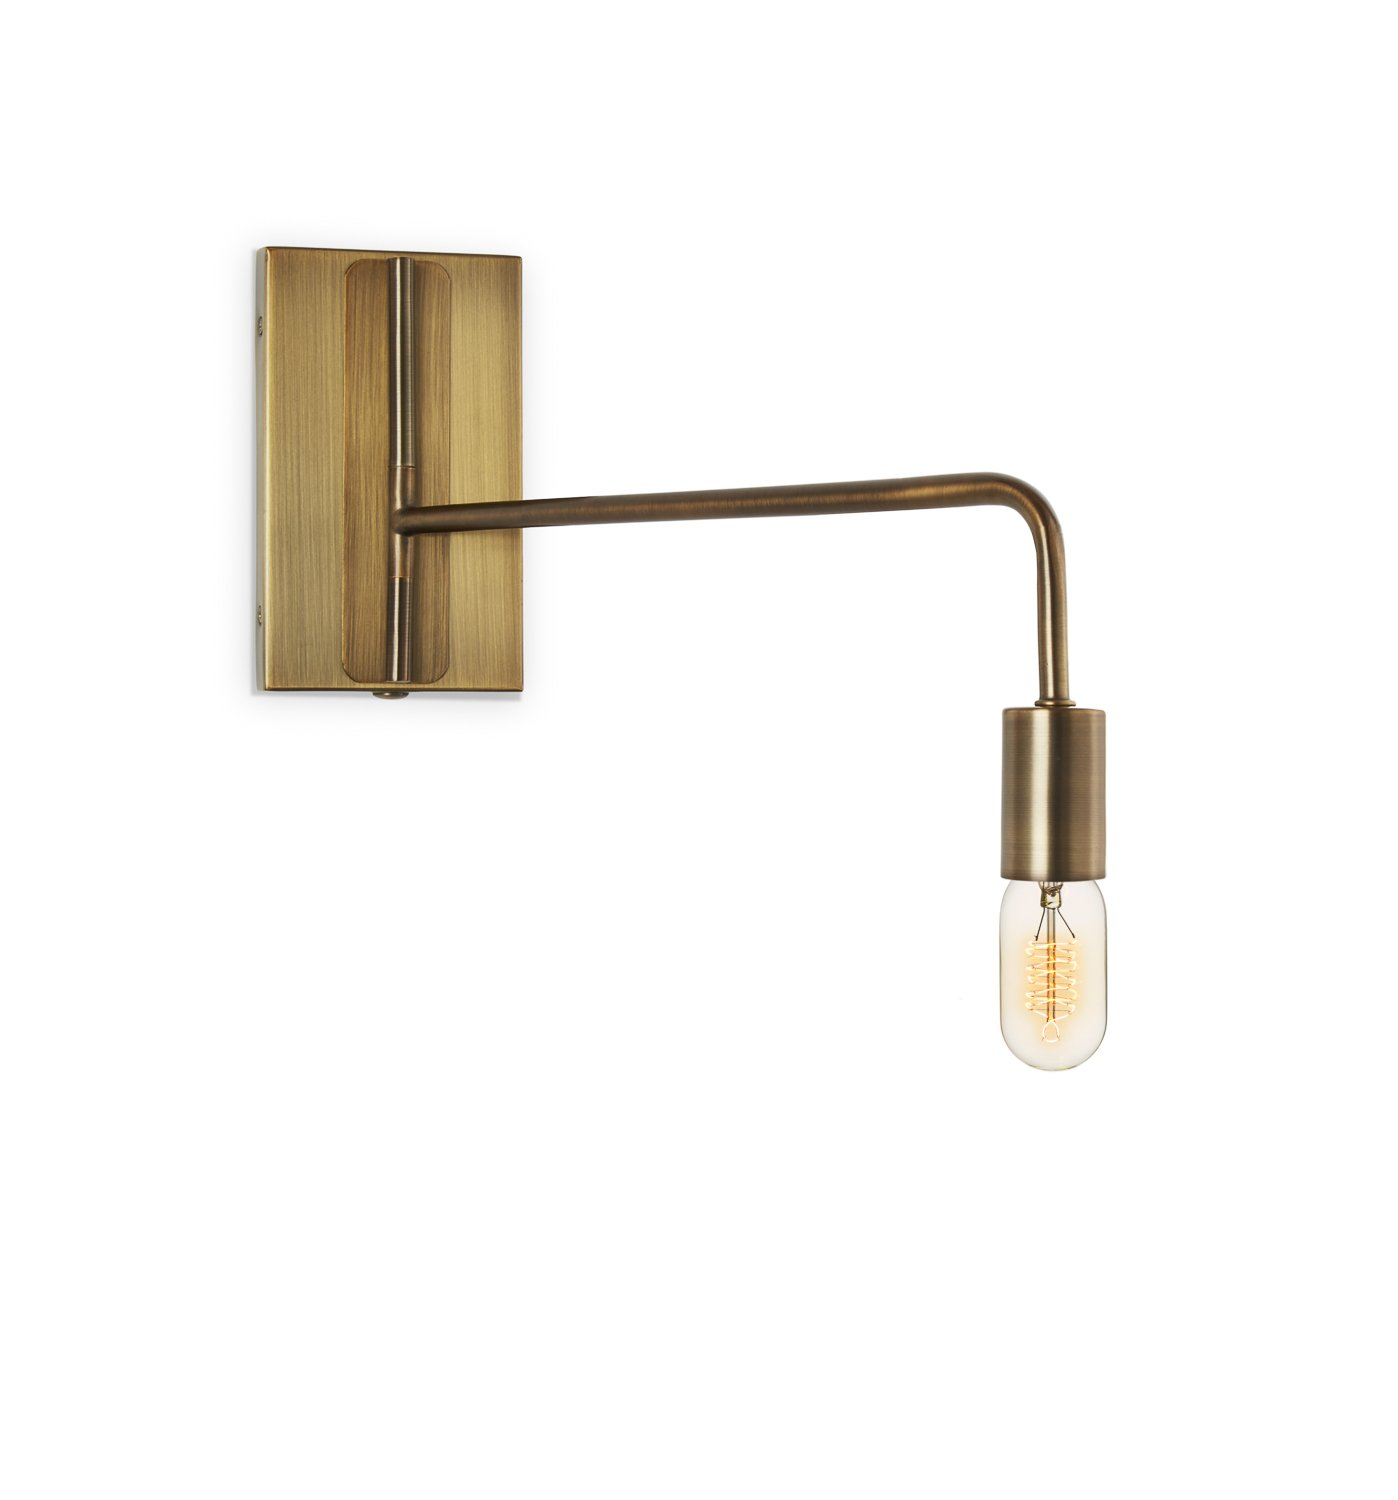 Bronze Wall Sconce Lamp Light Adjustable Swing Arm Plugin And